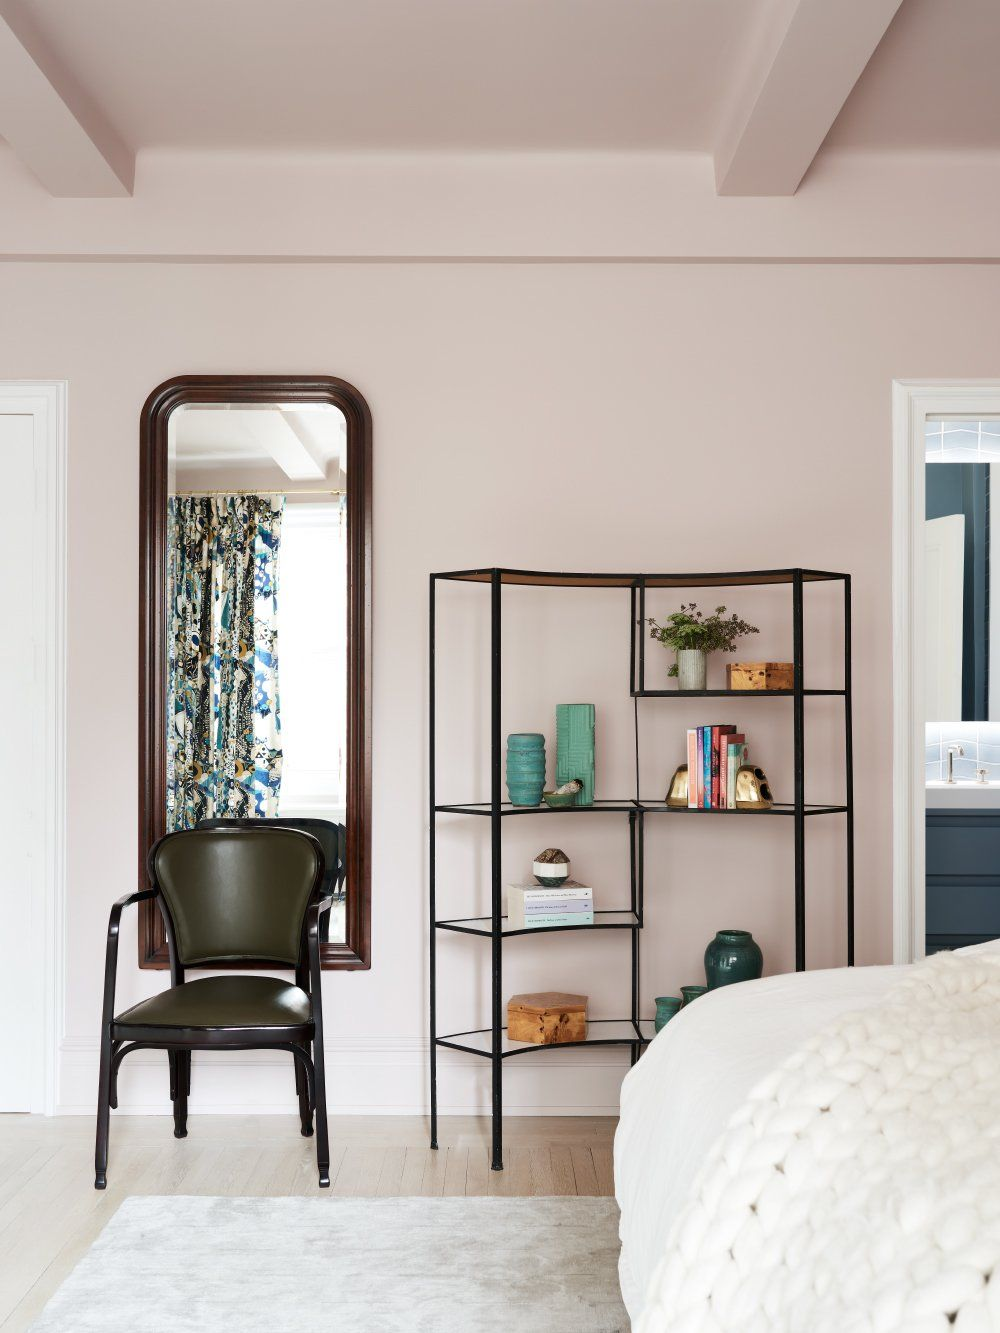 The walls and the ceiling of the bedroom have been painted in a pastel shade of pink which looks very trendy